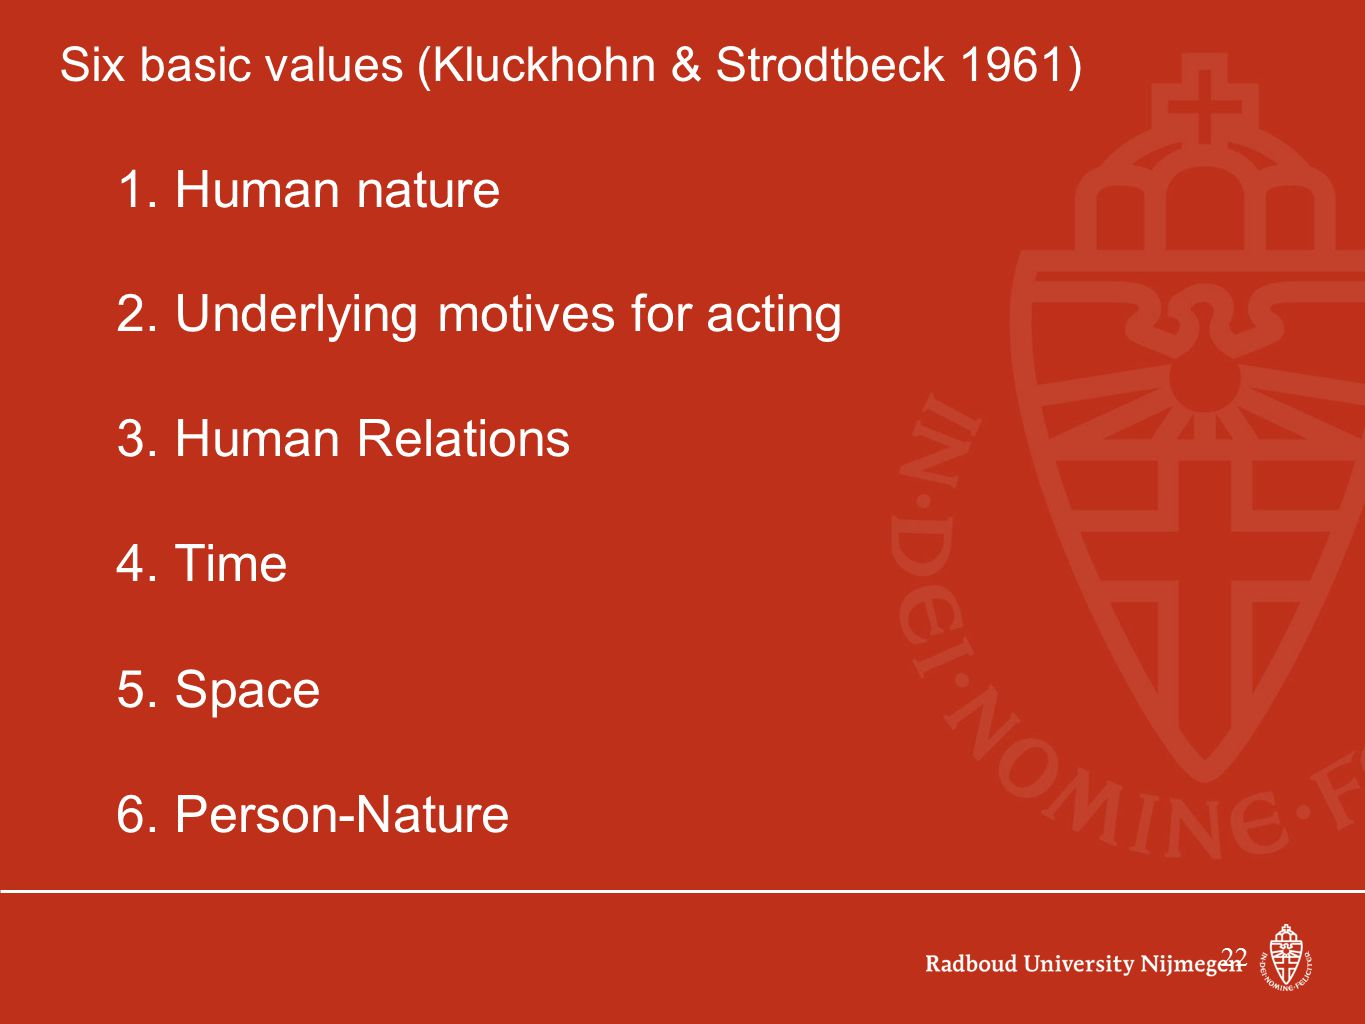 22 Six basic values (Kluckhohn & Strodtbeck 1961) 1. Human nature 2. Underlying motives for acting 3. Human Relations 4. Time 5. Space 6. Person-Natur